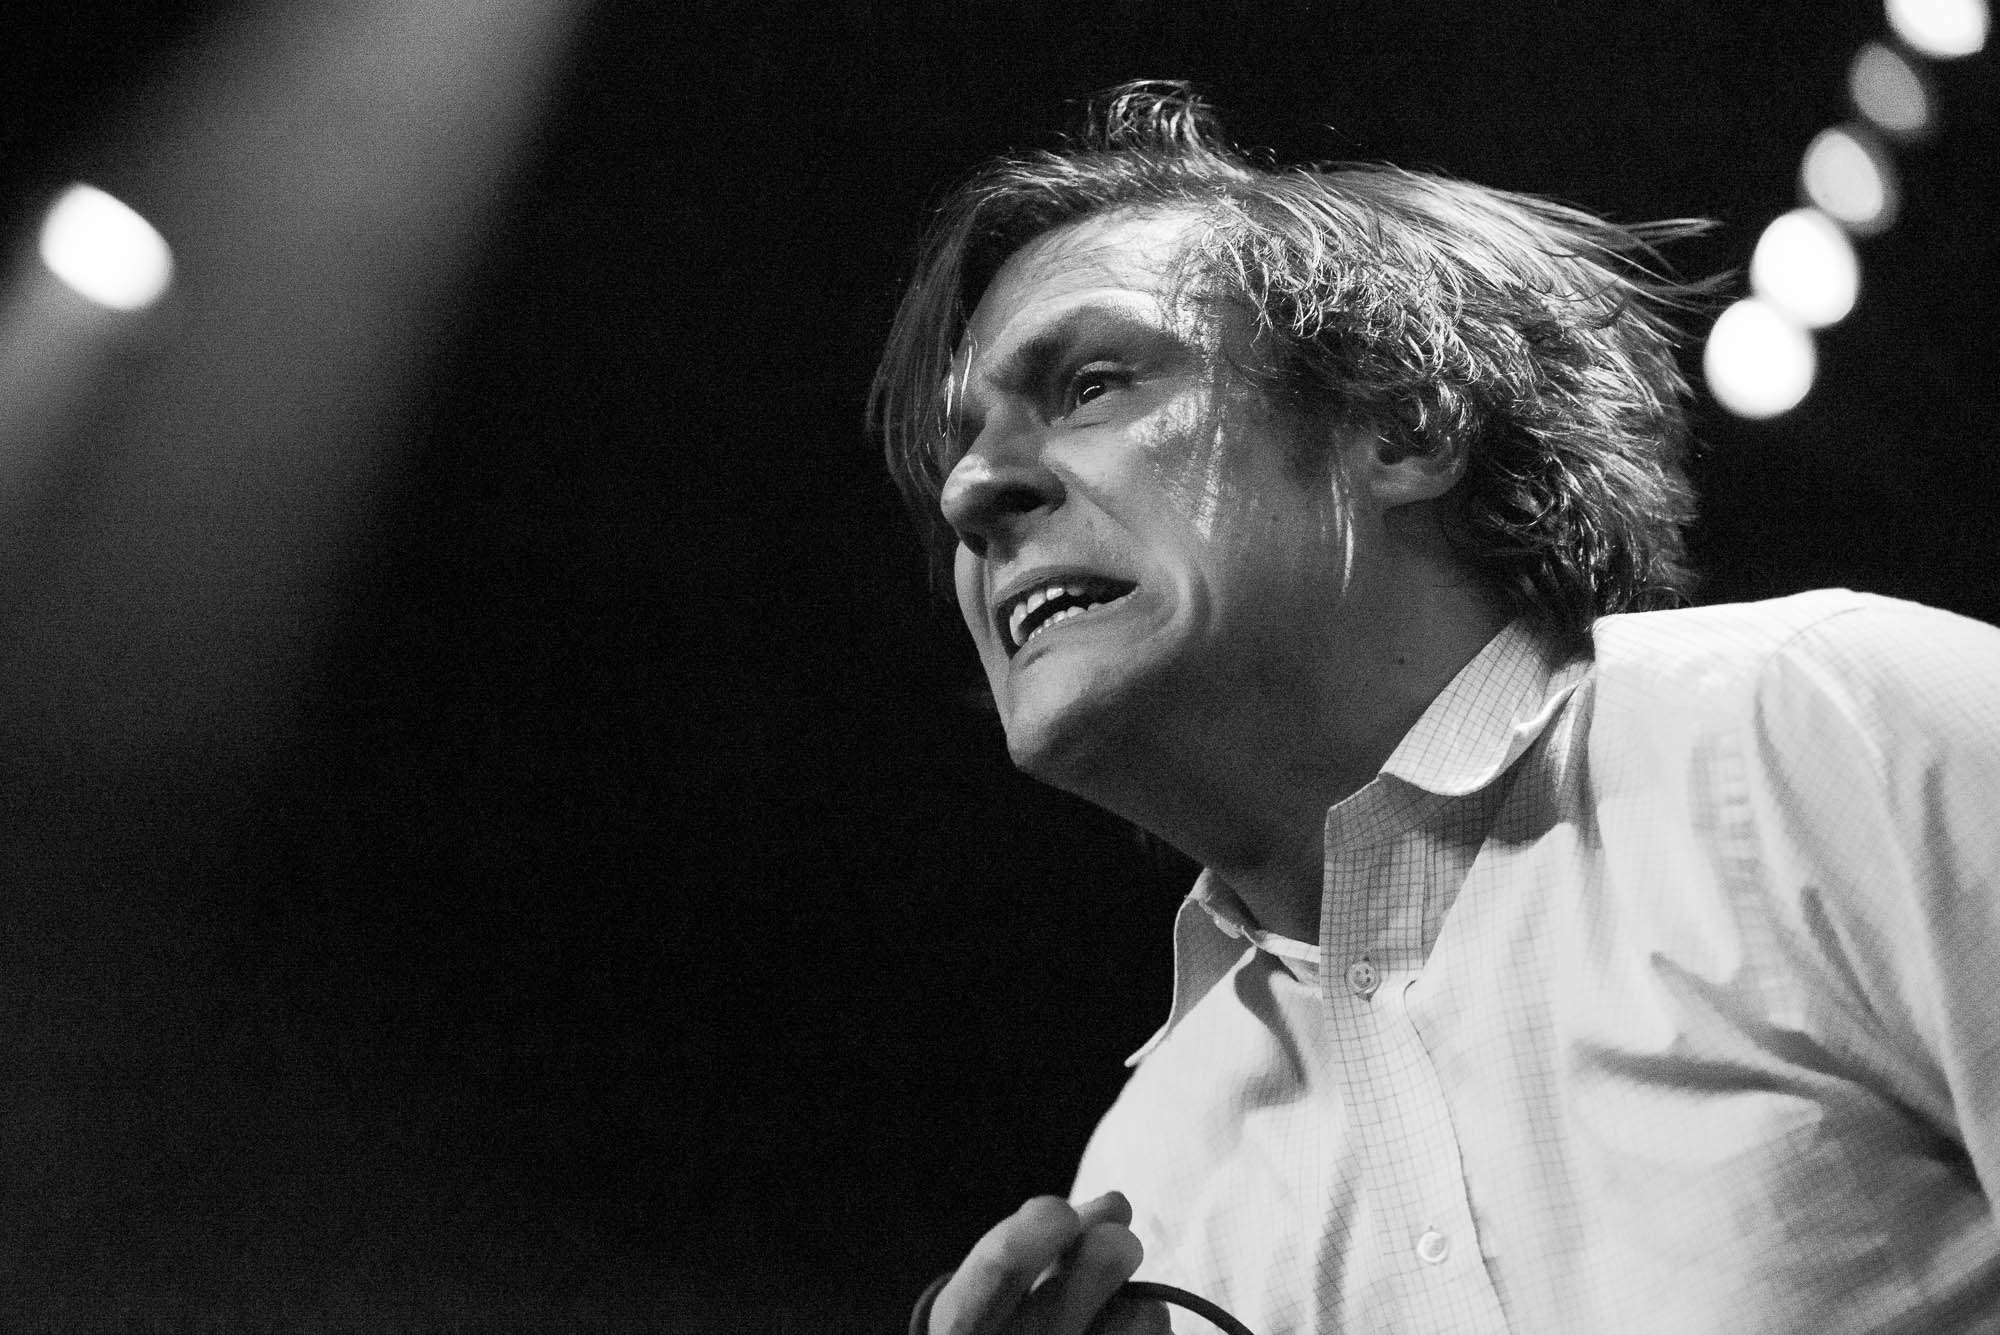 John Maus at Brooklyn Steel on Monday, February 4, 2019.